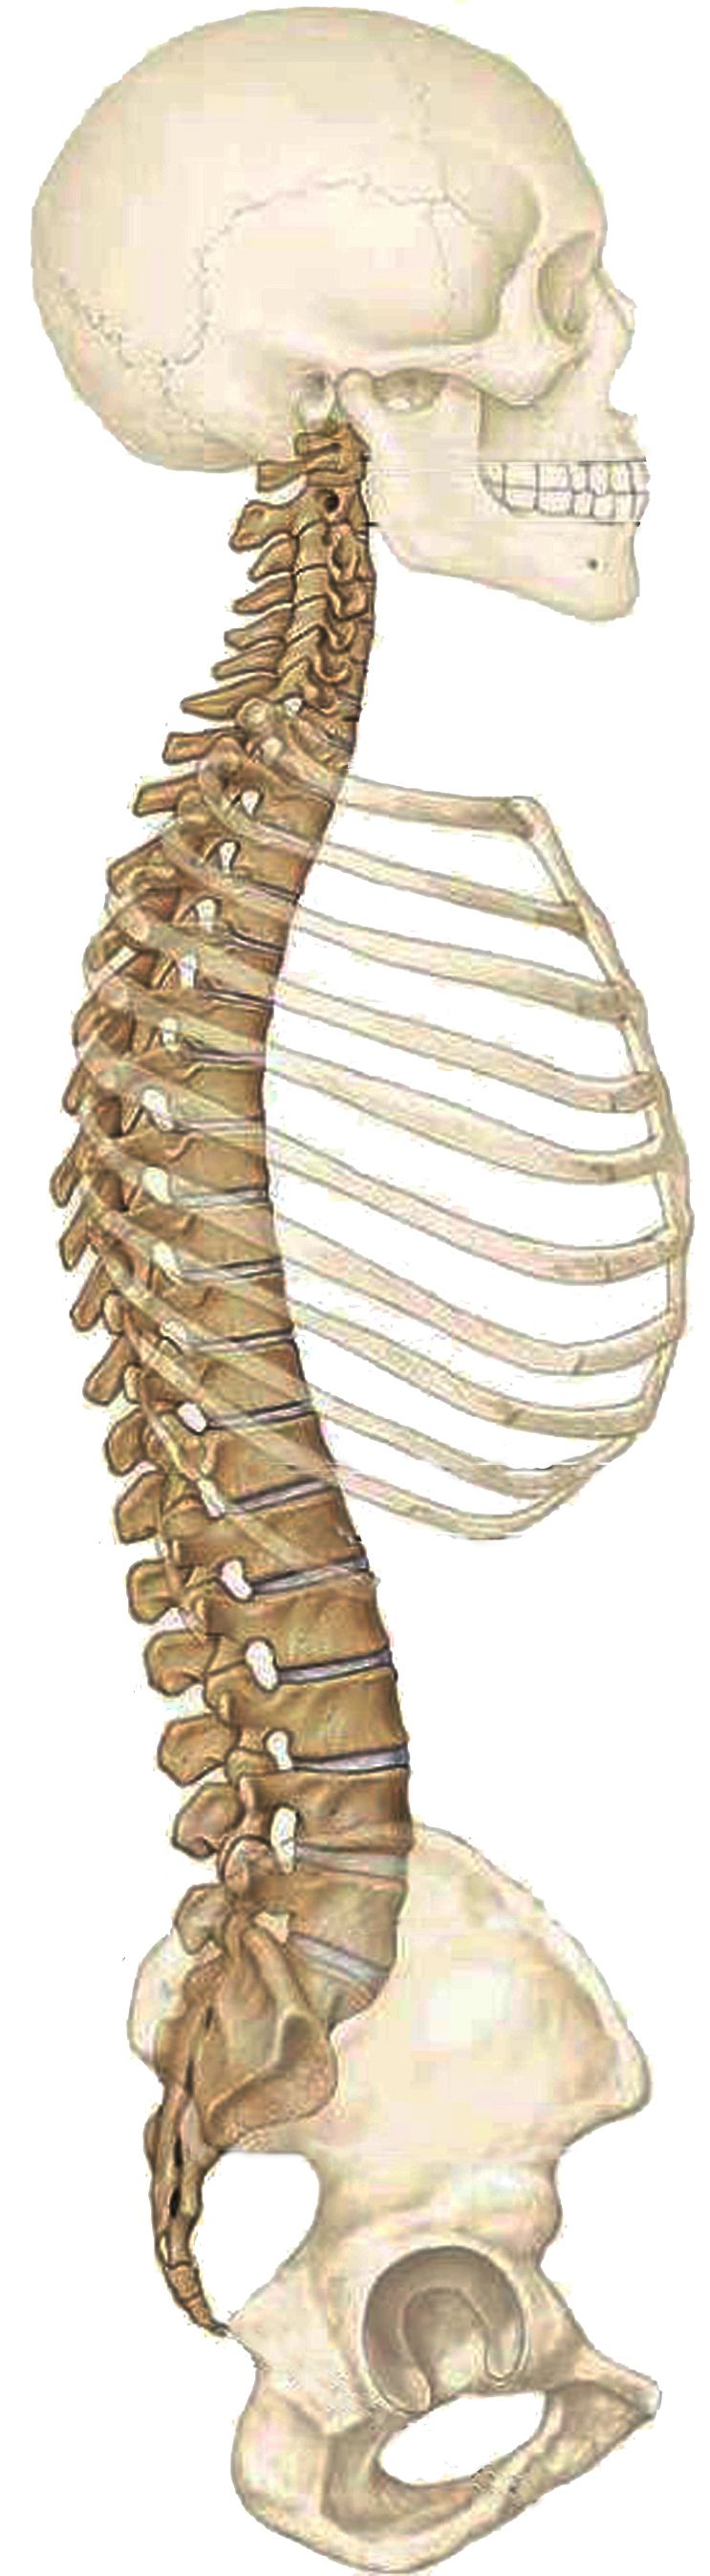 spine anatomy the human spine � anatomy chiropractic